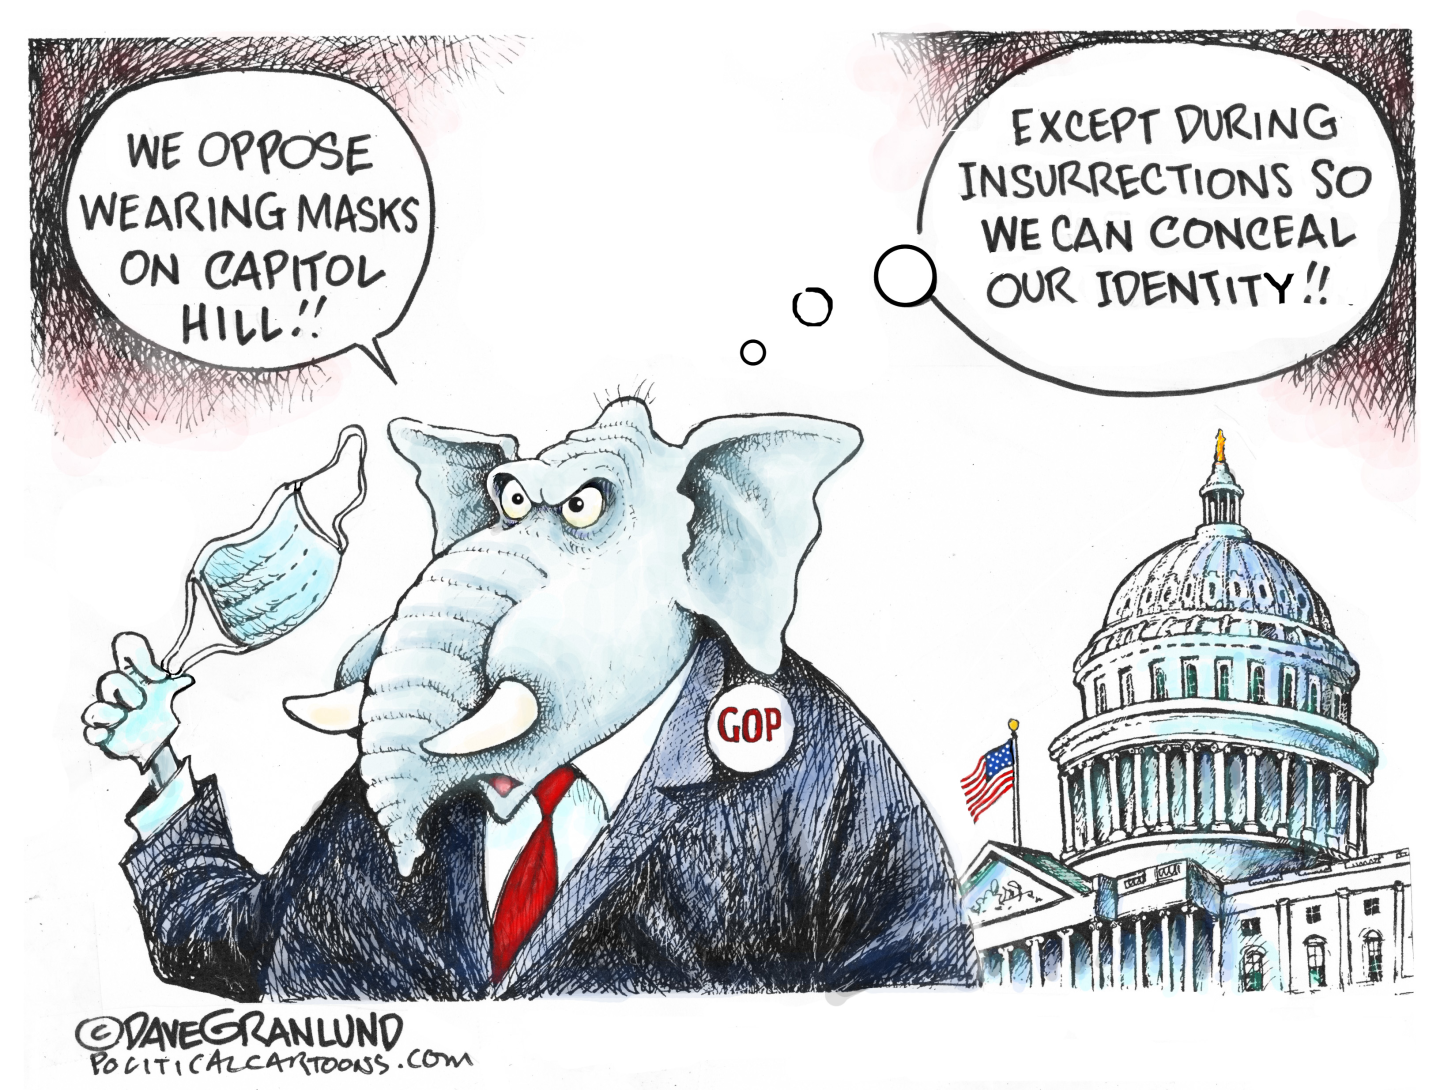 GOP and Capitol Hill masks